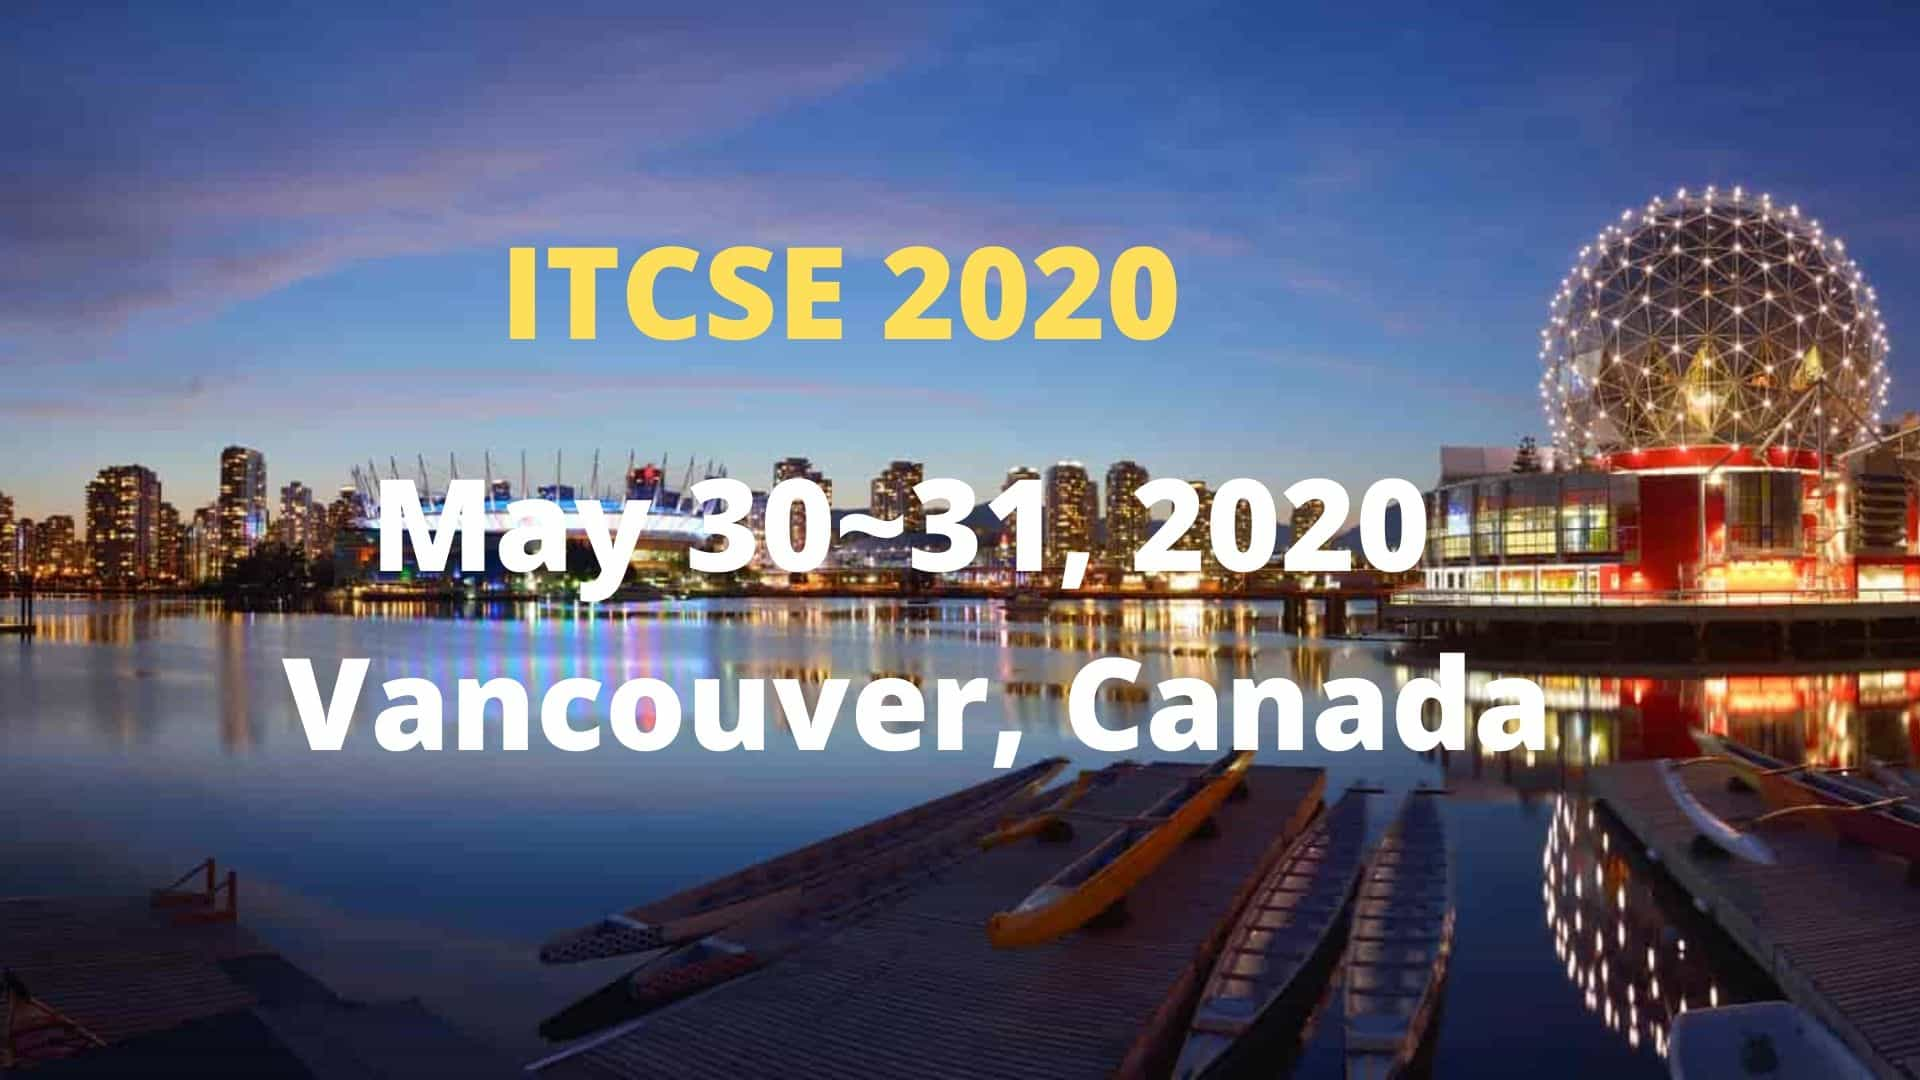 9th International Conference on Information Technology Convergence and Services (ITCSE 2020)